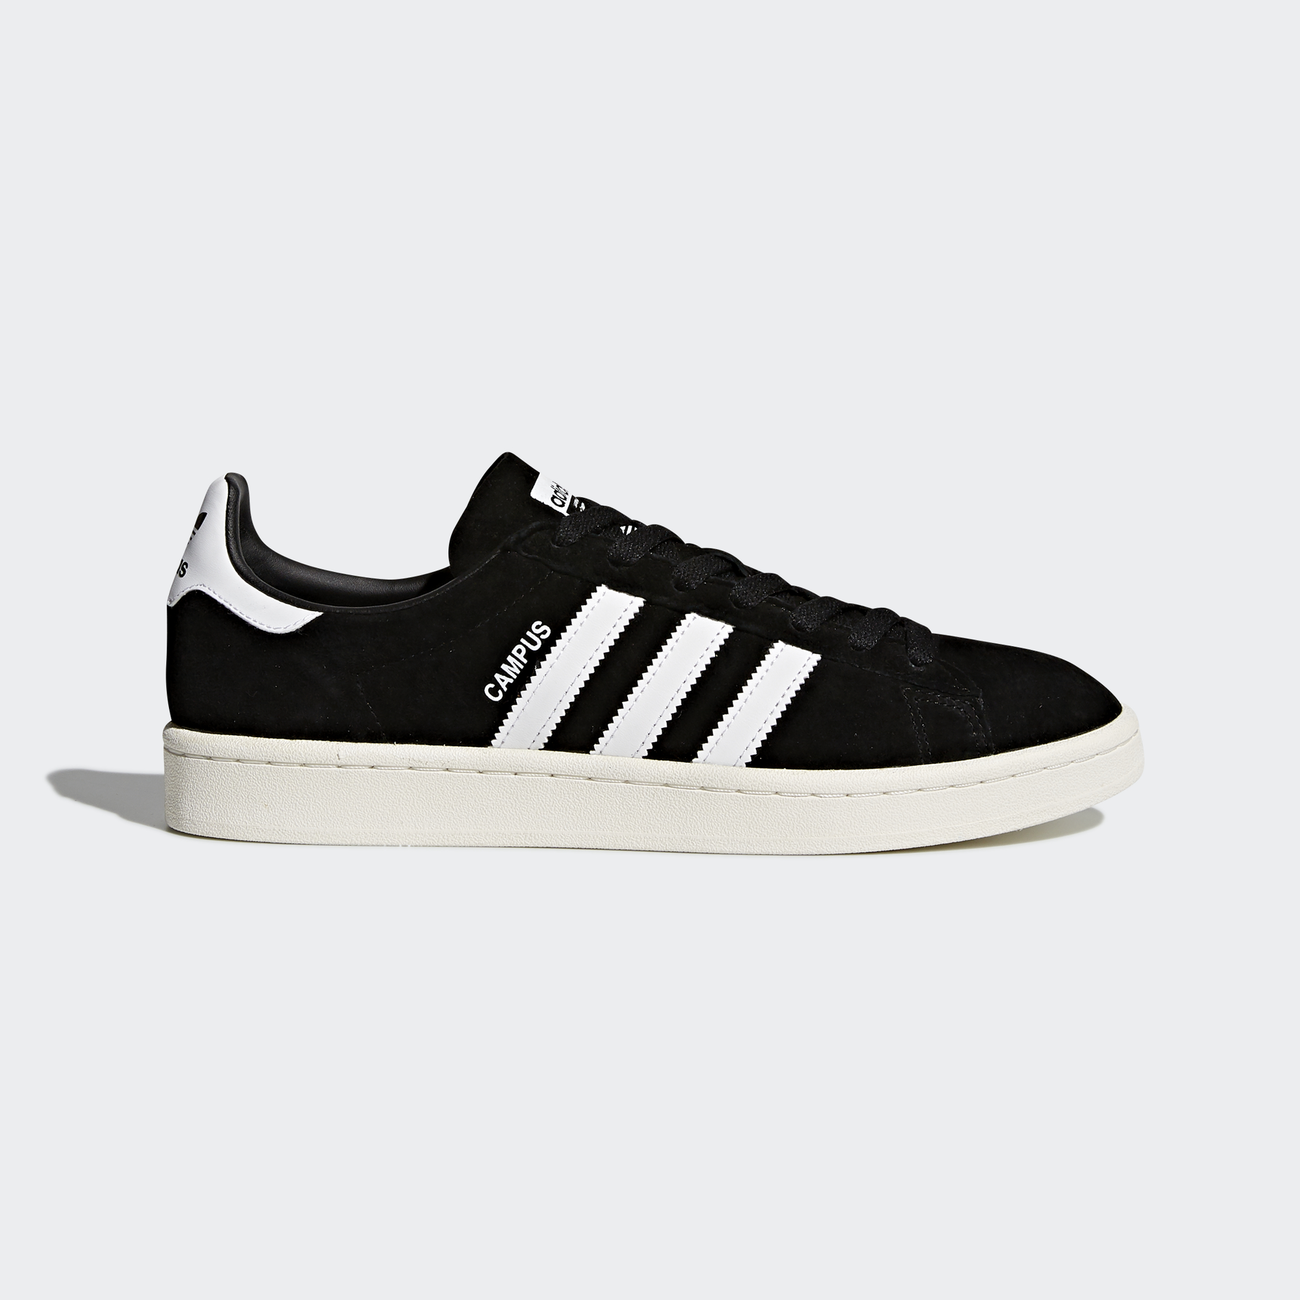 Adidas Originals Schuhe Campus